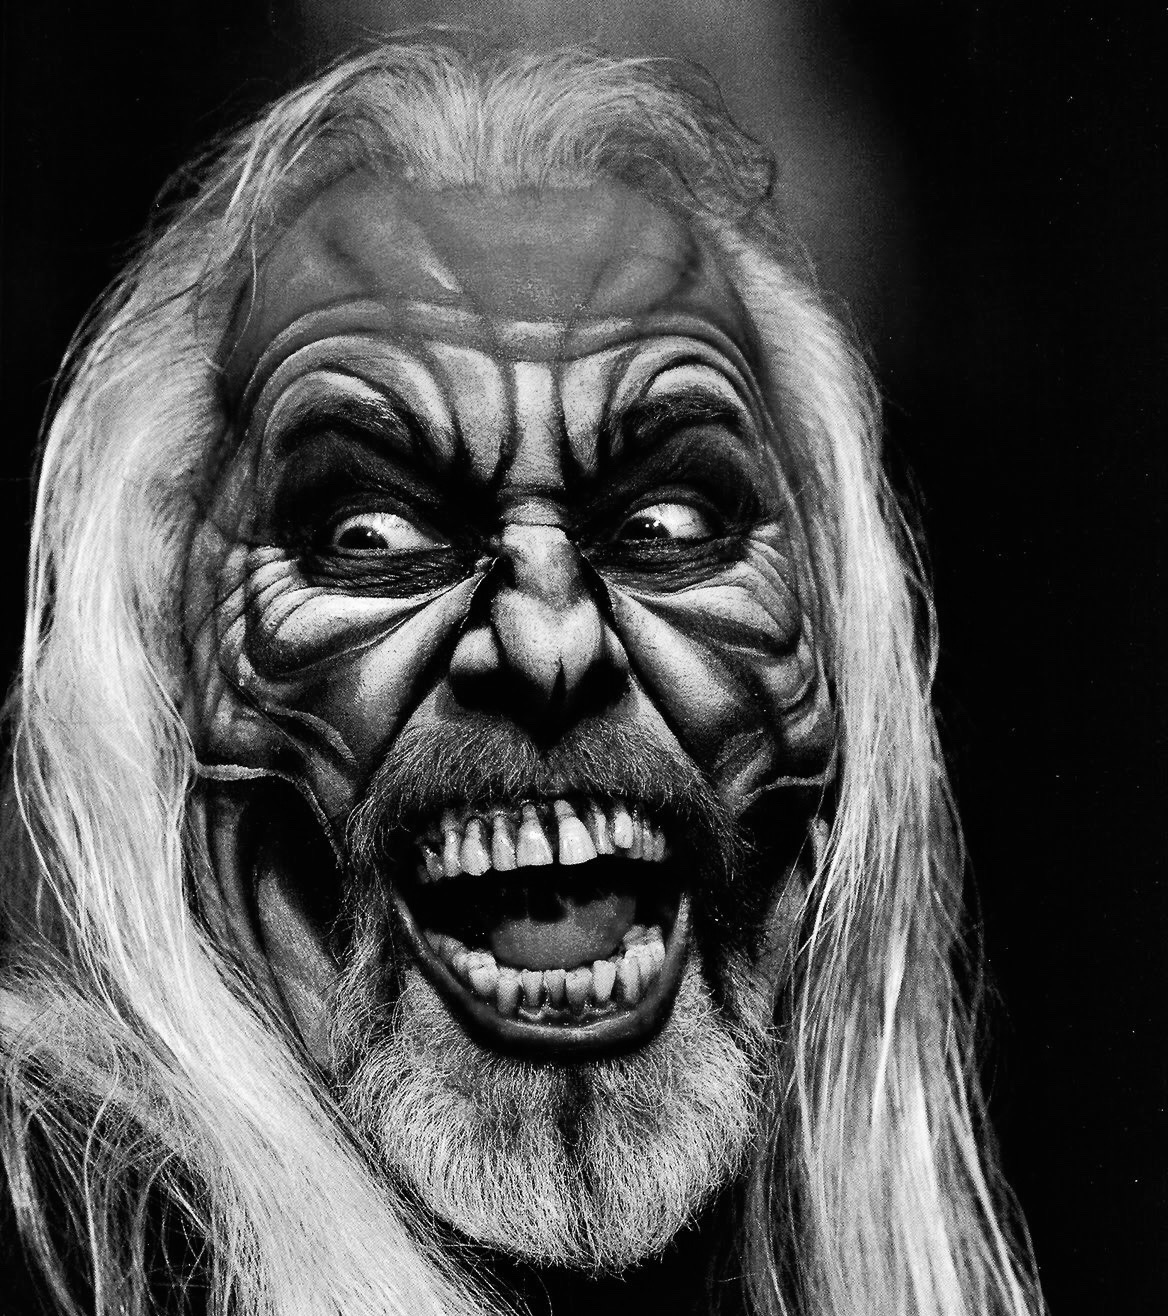 Rick Baker in horror makeup that he painted on himself.